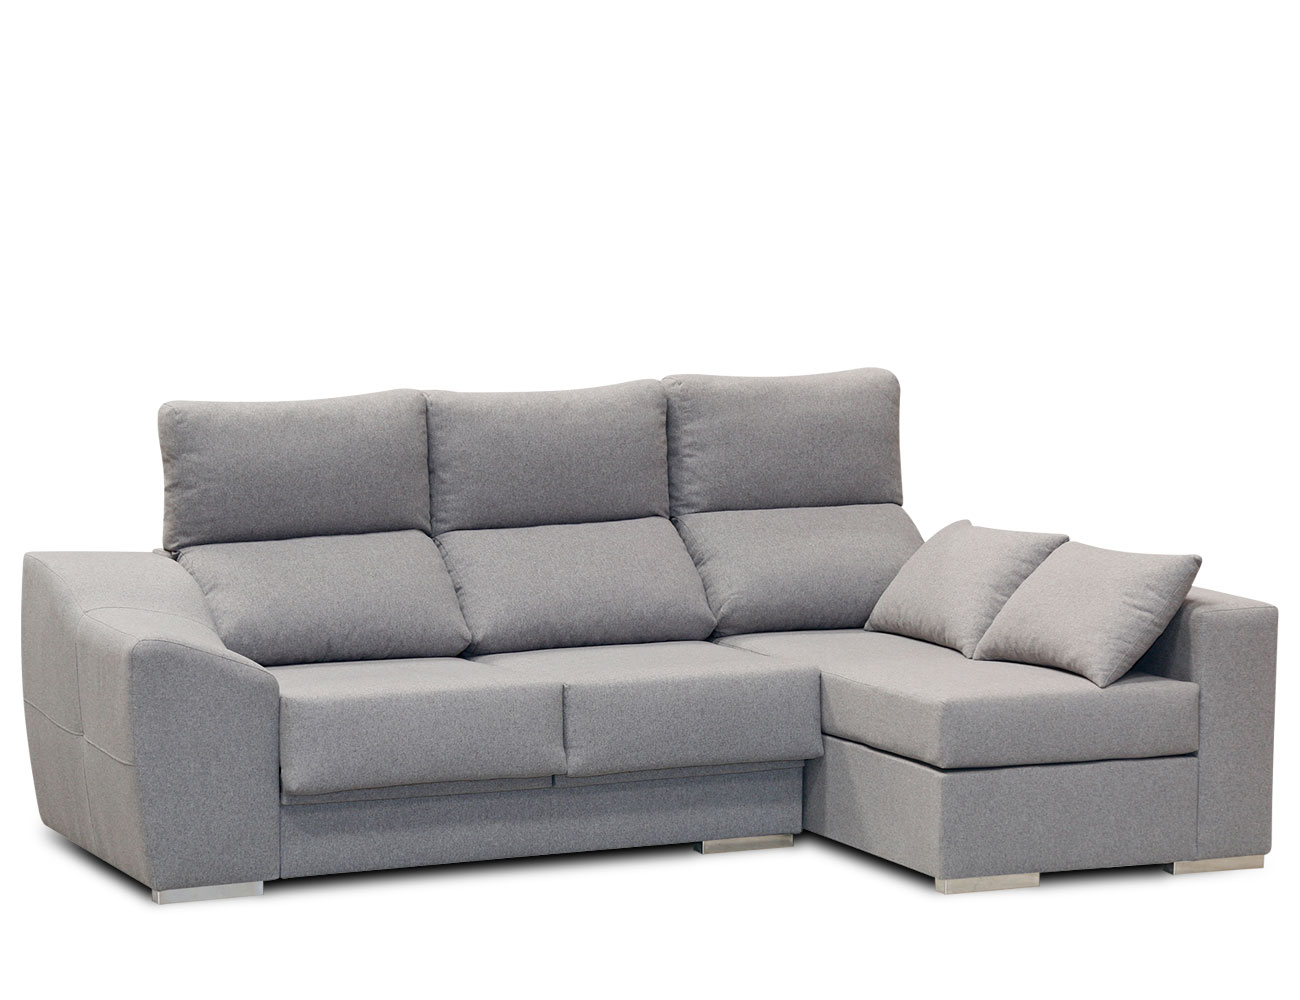 Sofa chaiselongue moderno gris 41